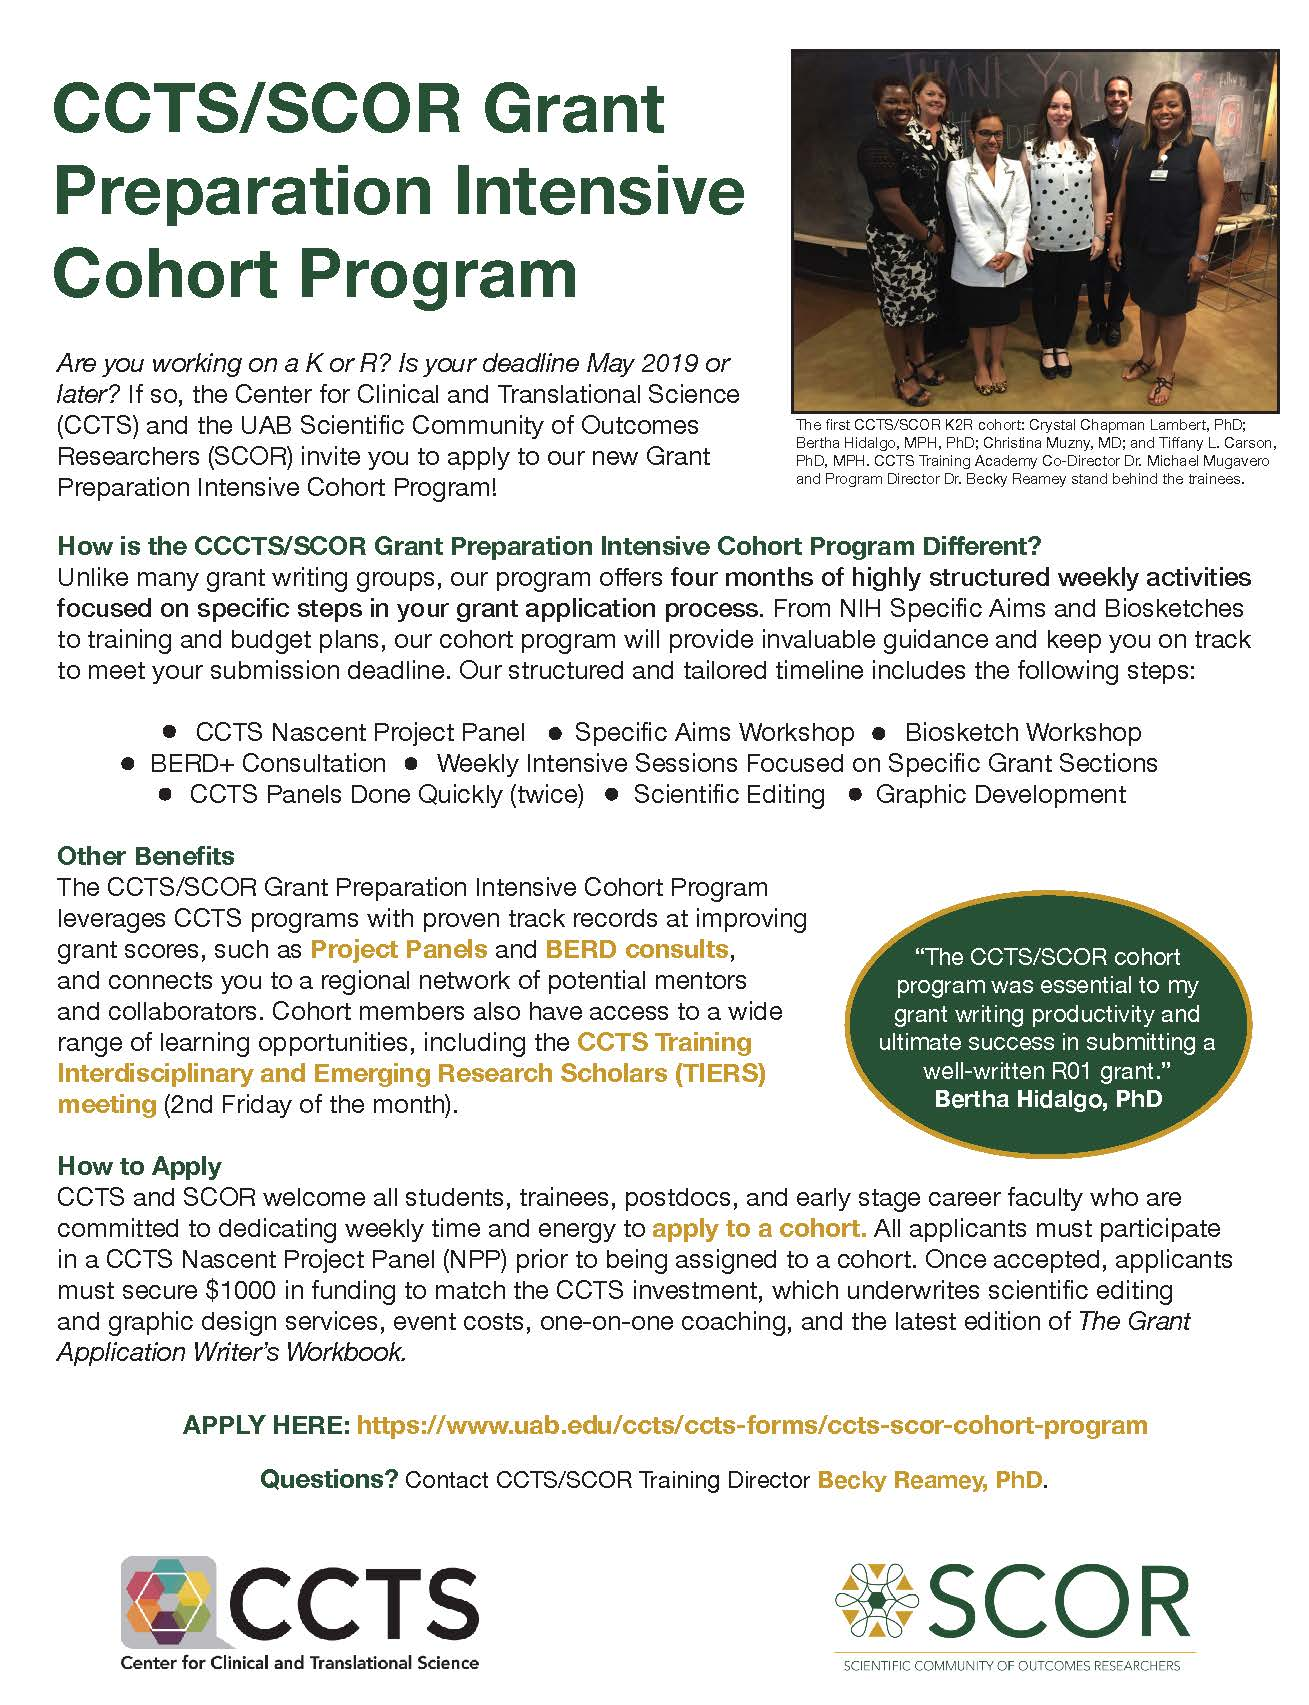 CCTS SCOR Grant Preparation Intensive Cohort Program V12